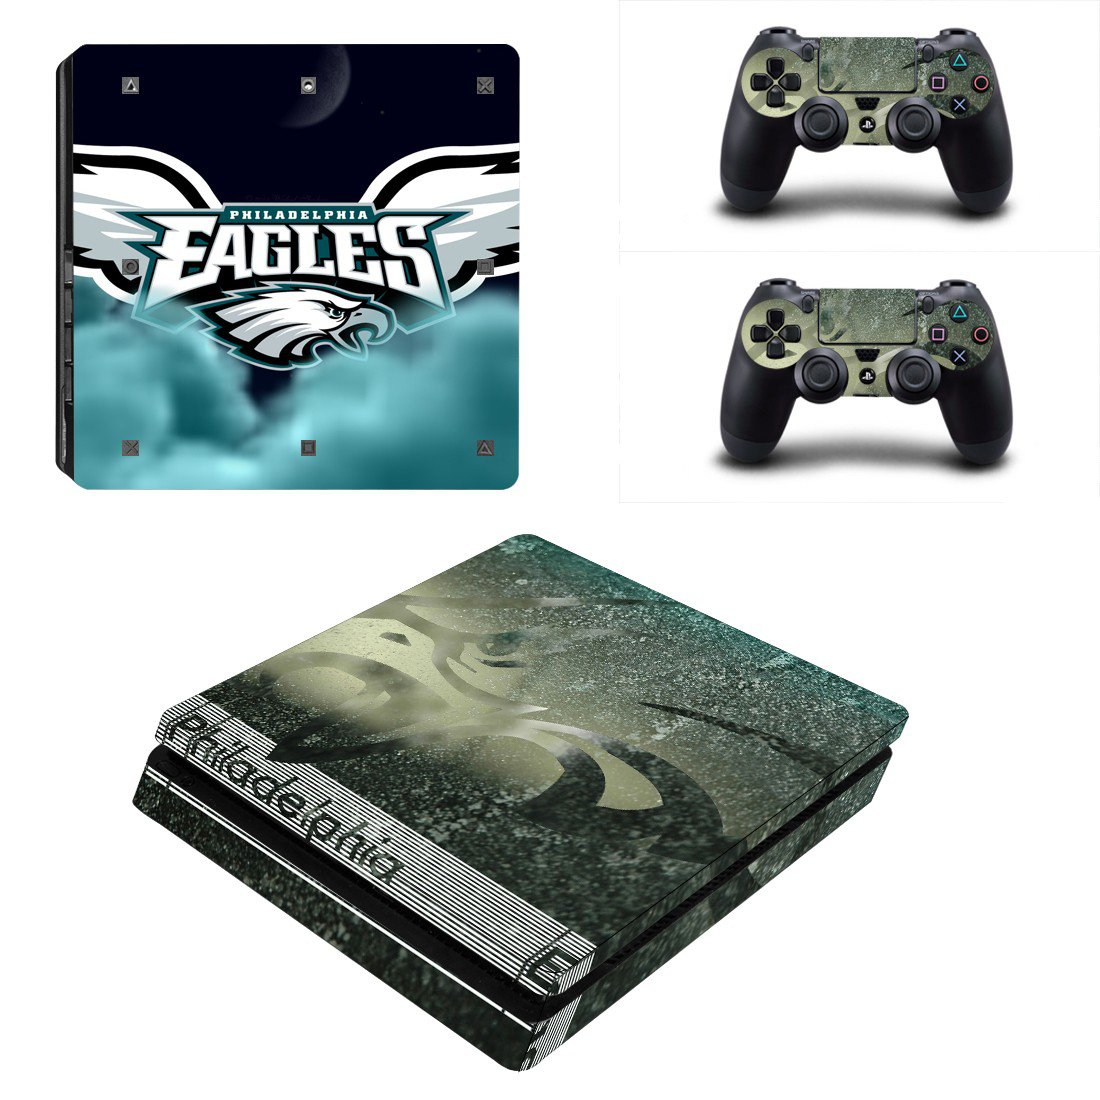 Philadelphia Eagles Play Station 4 slim skin decal for console and 2 controllers